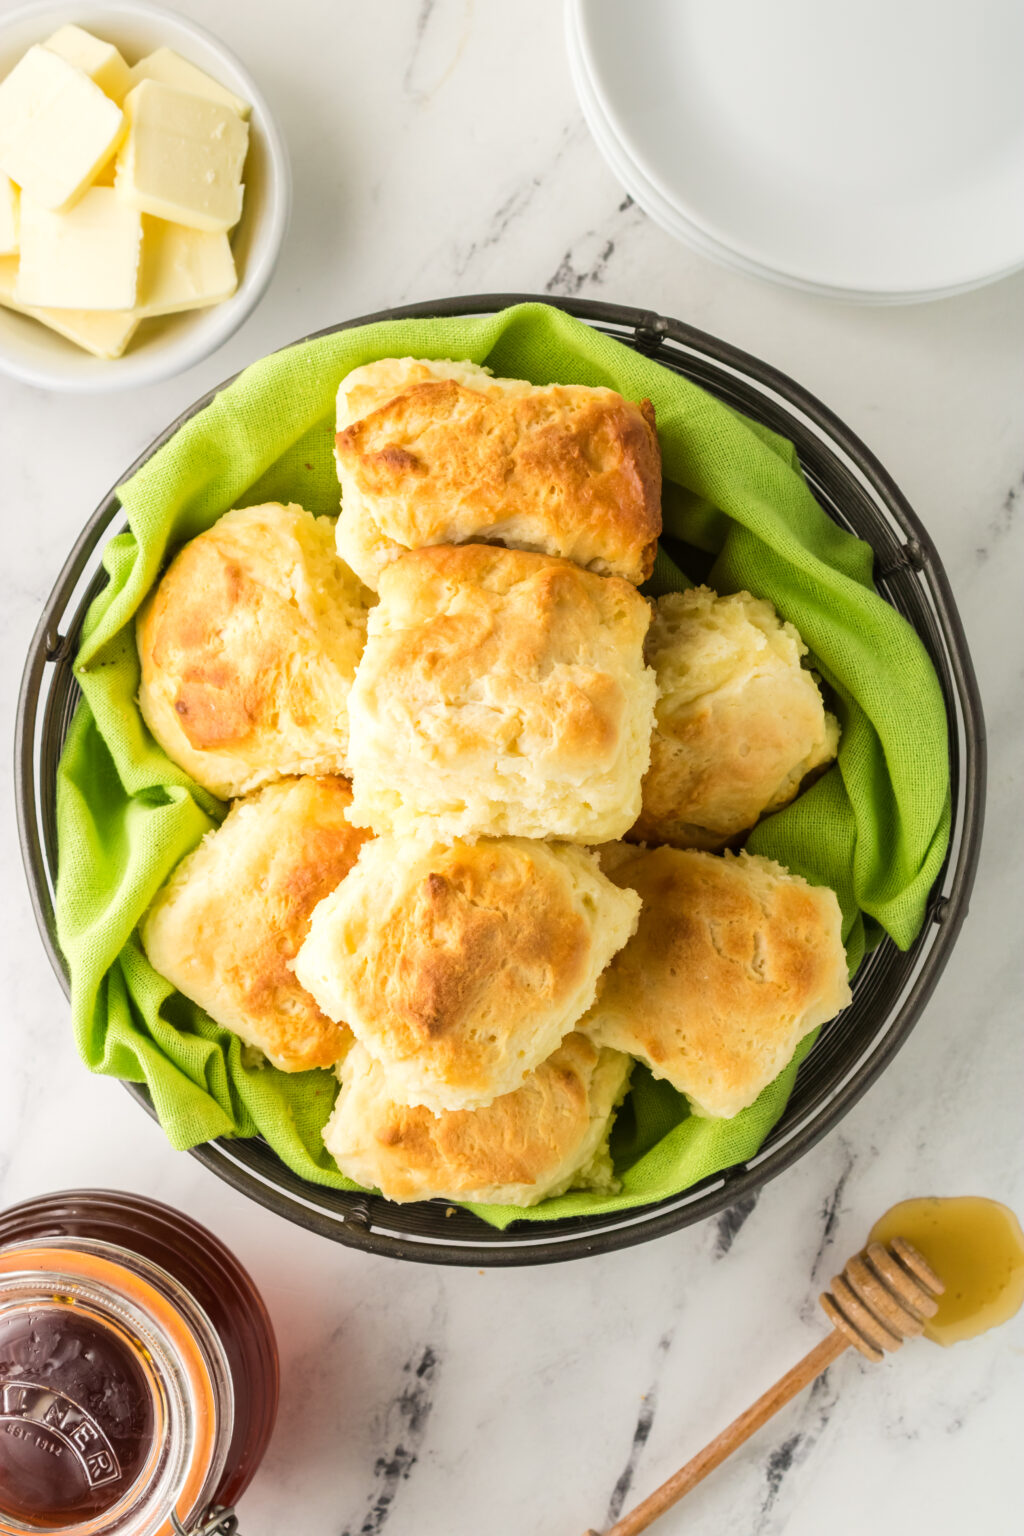 mountain dew biscuits in a bowl with a green linen